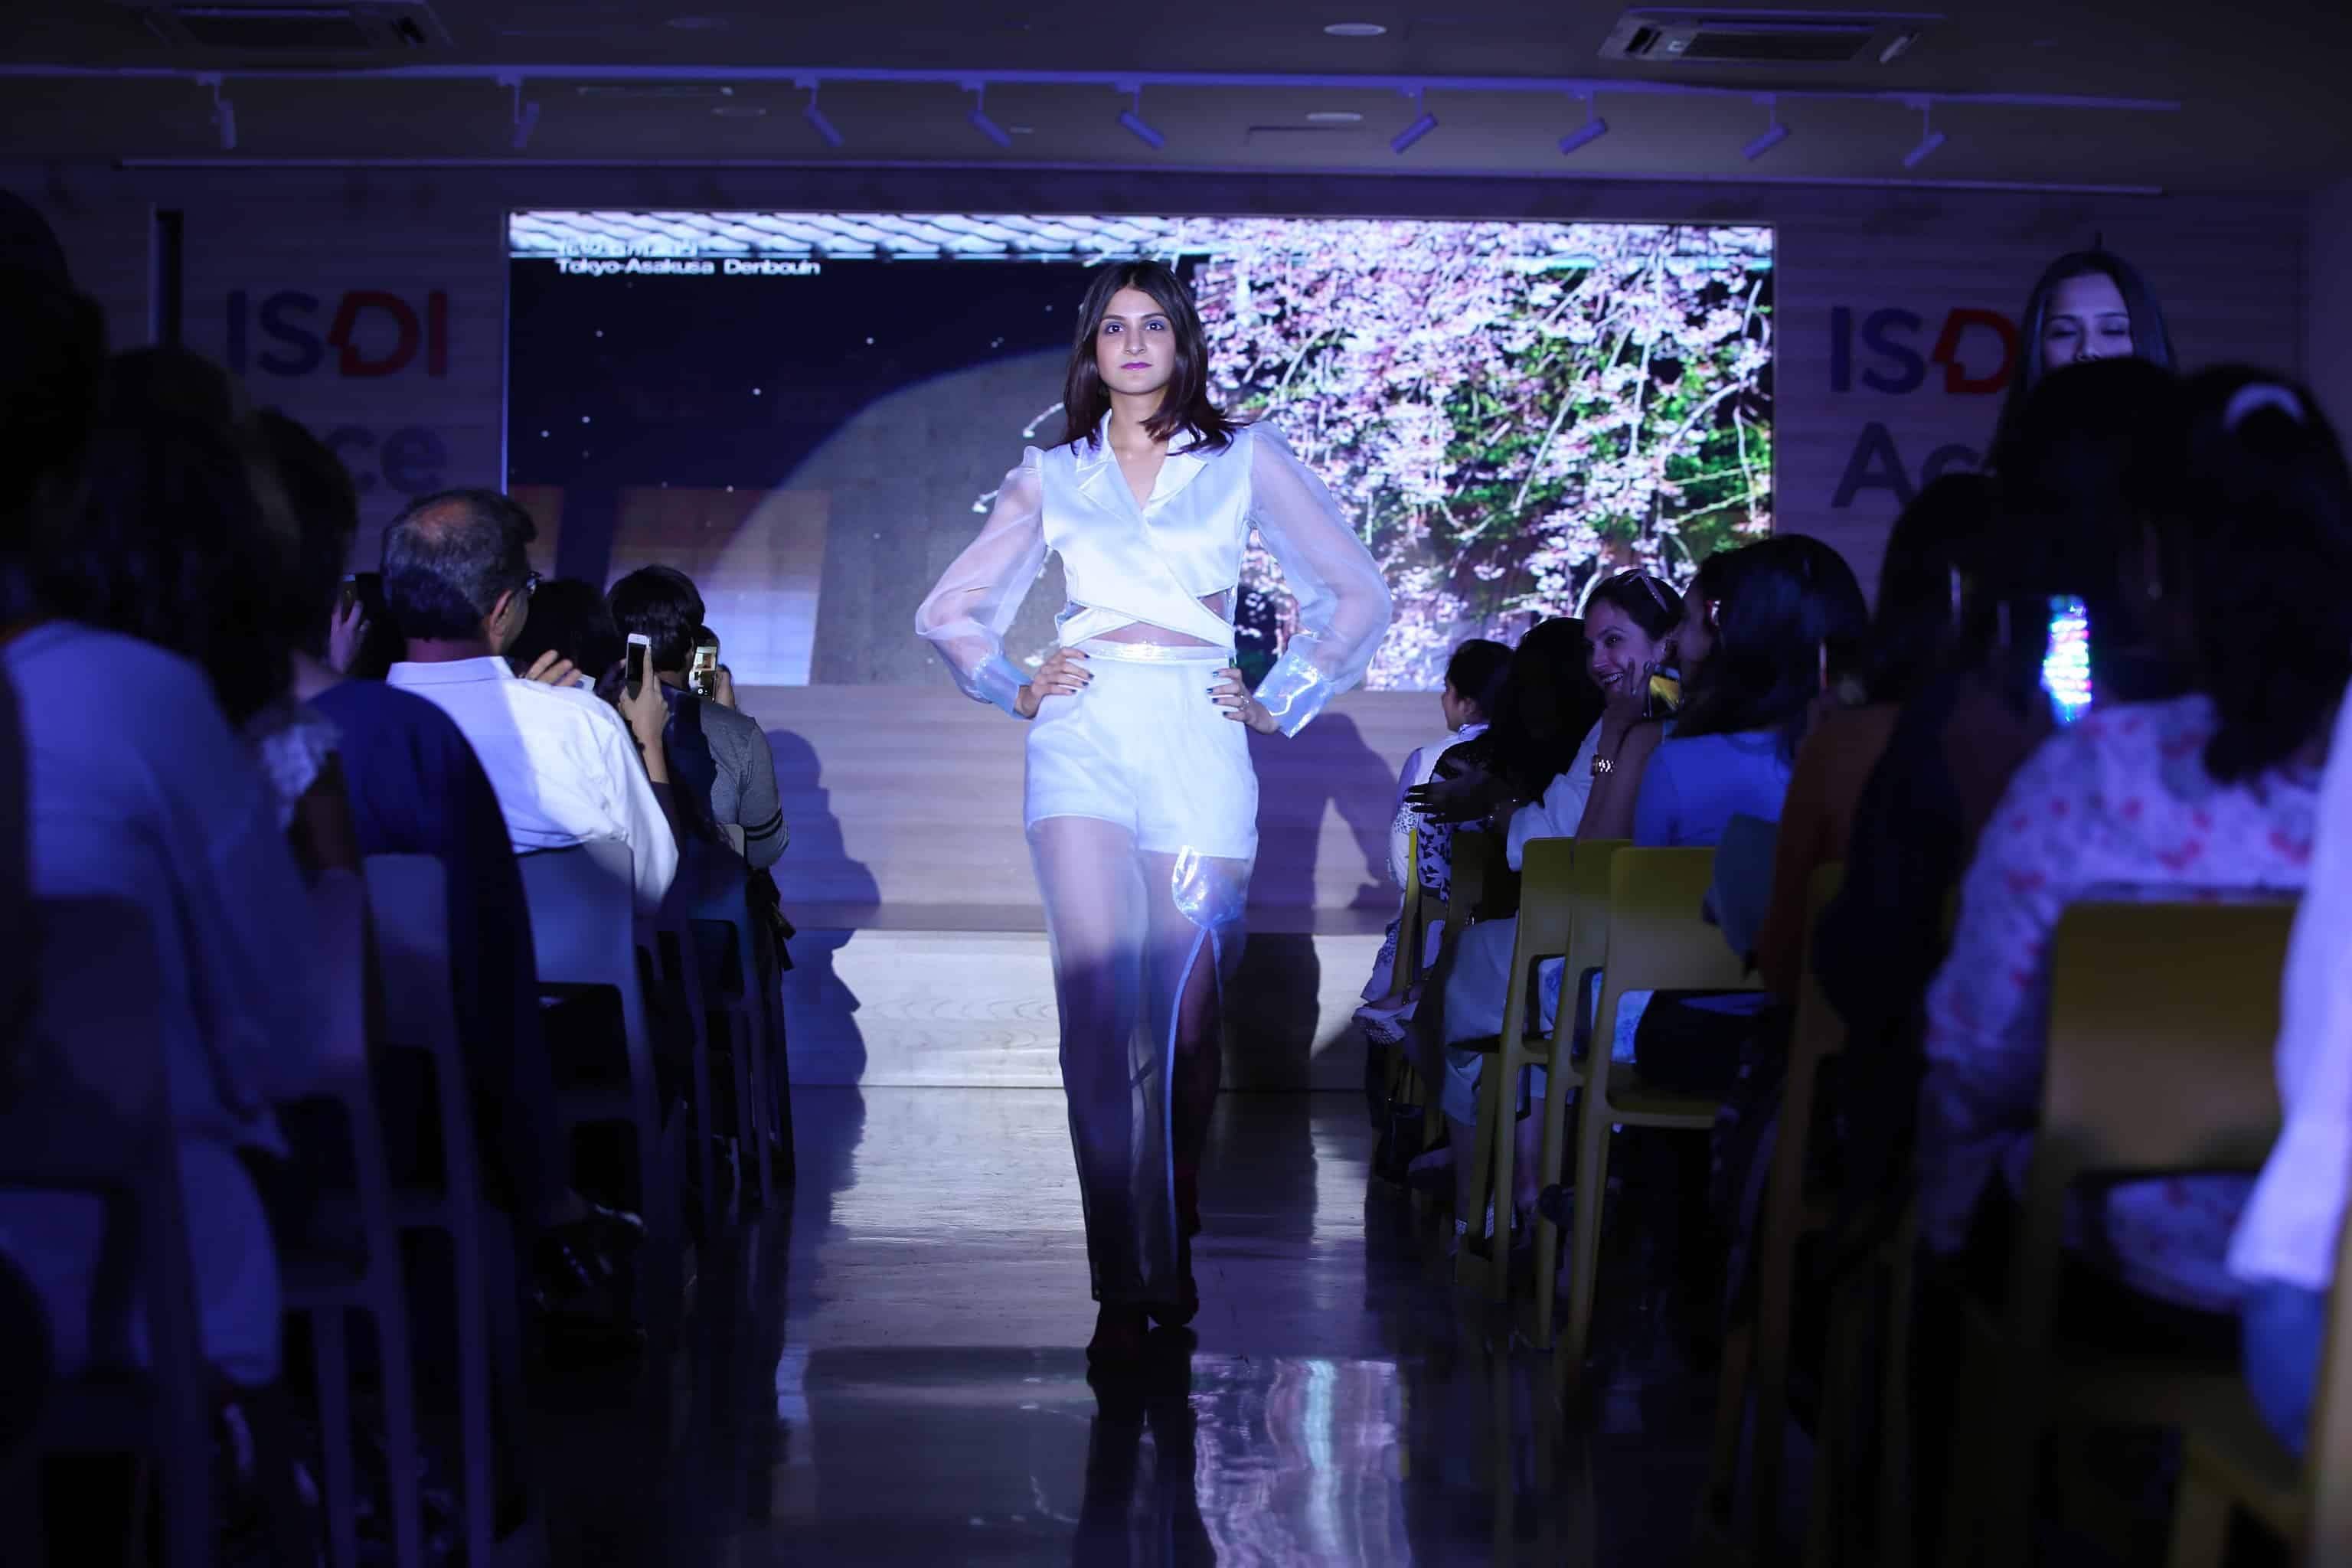 Top Fashion Designing Colleges in India 2018 - Ranks, Fees, Cut Courses for fashion designing in india